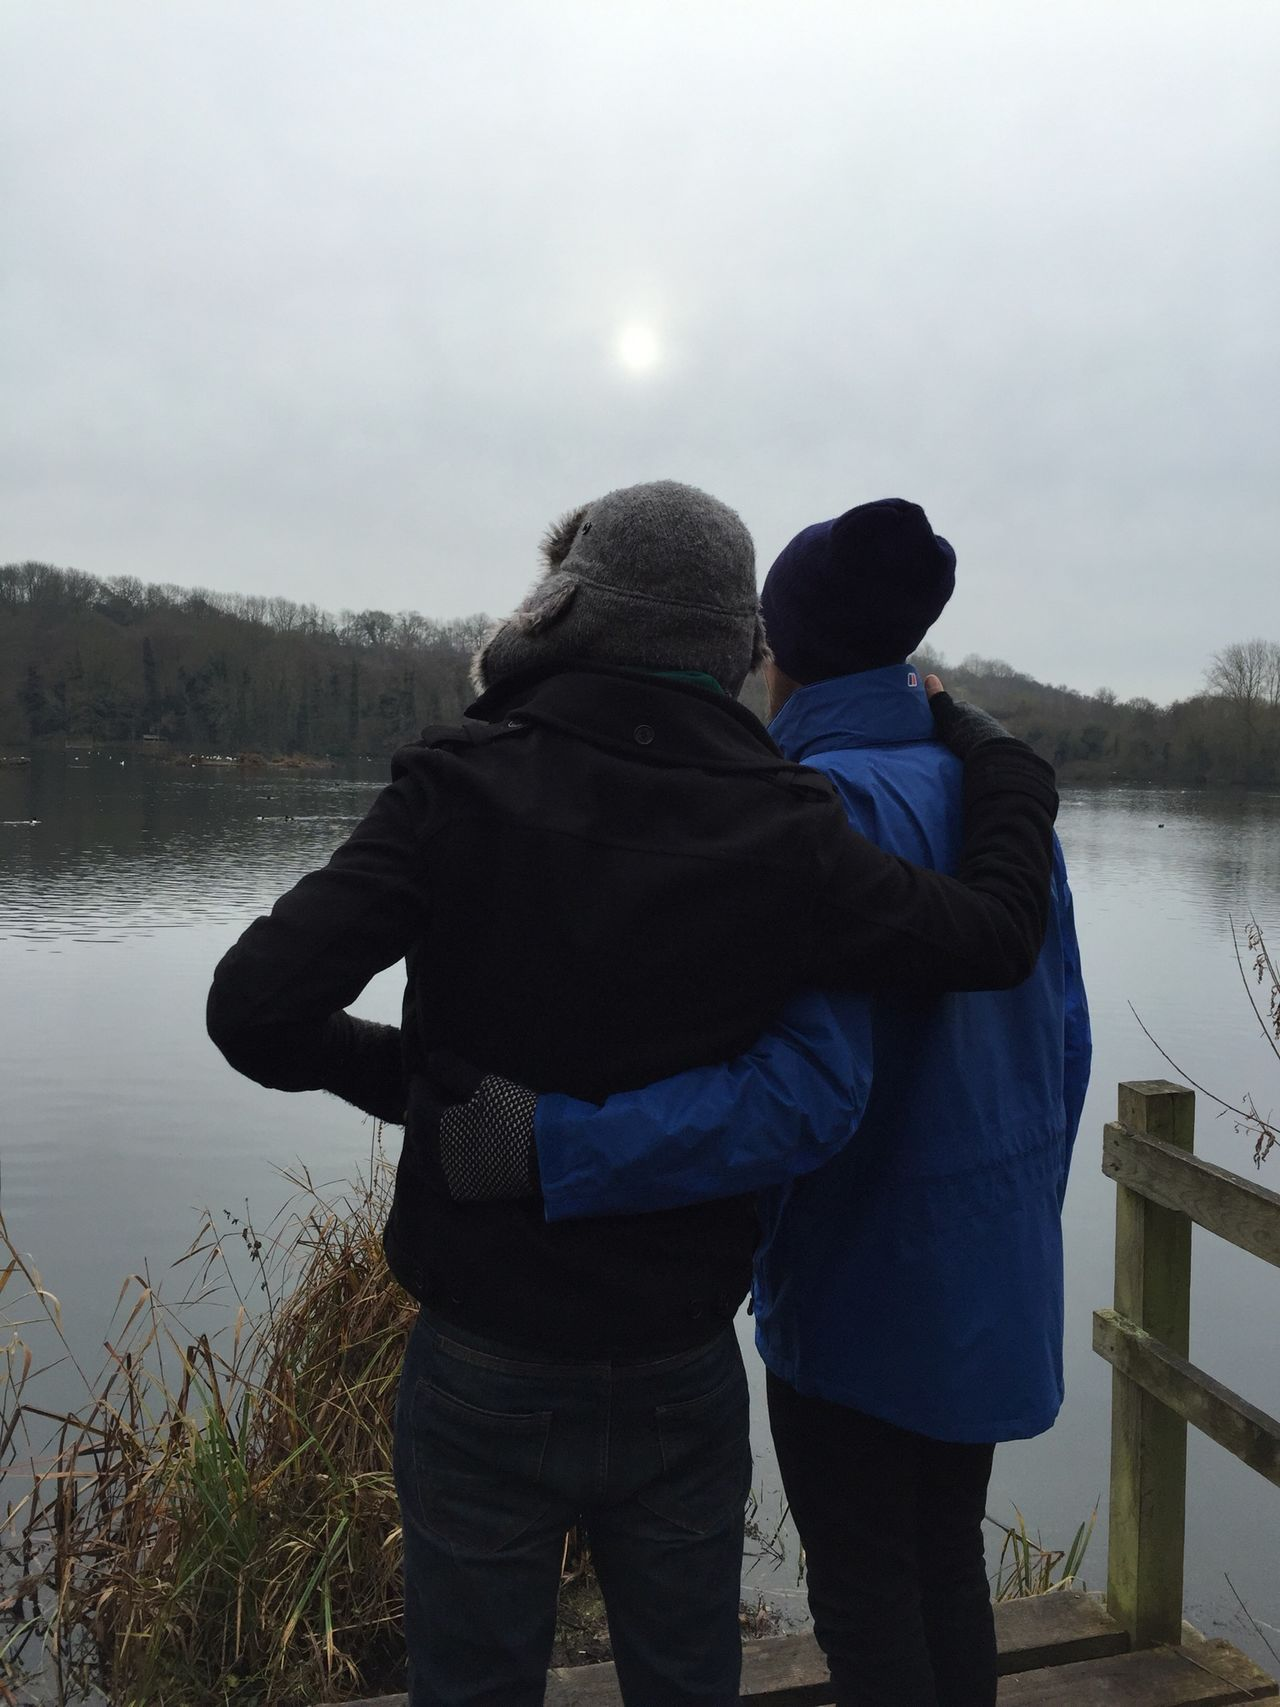 Bromance Friends Guy Friends Mates Buddies Male Bonding Winter Walk Lake Countryside English Countryside Lake View Winter Guy Mates Two Men Misty Misty Sky Haze Winter Jackets Men At One With Nature Friendship